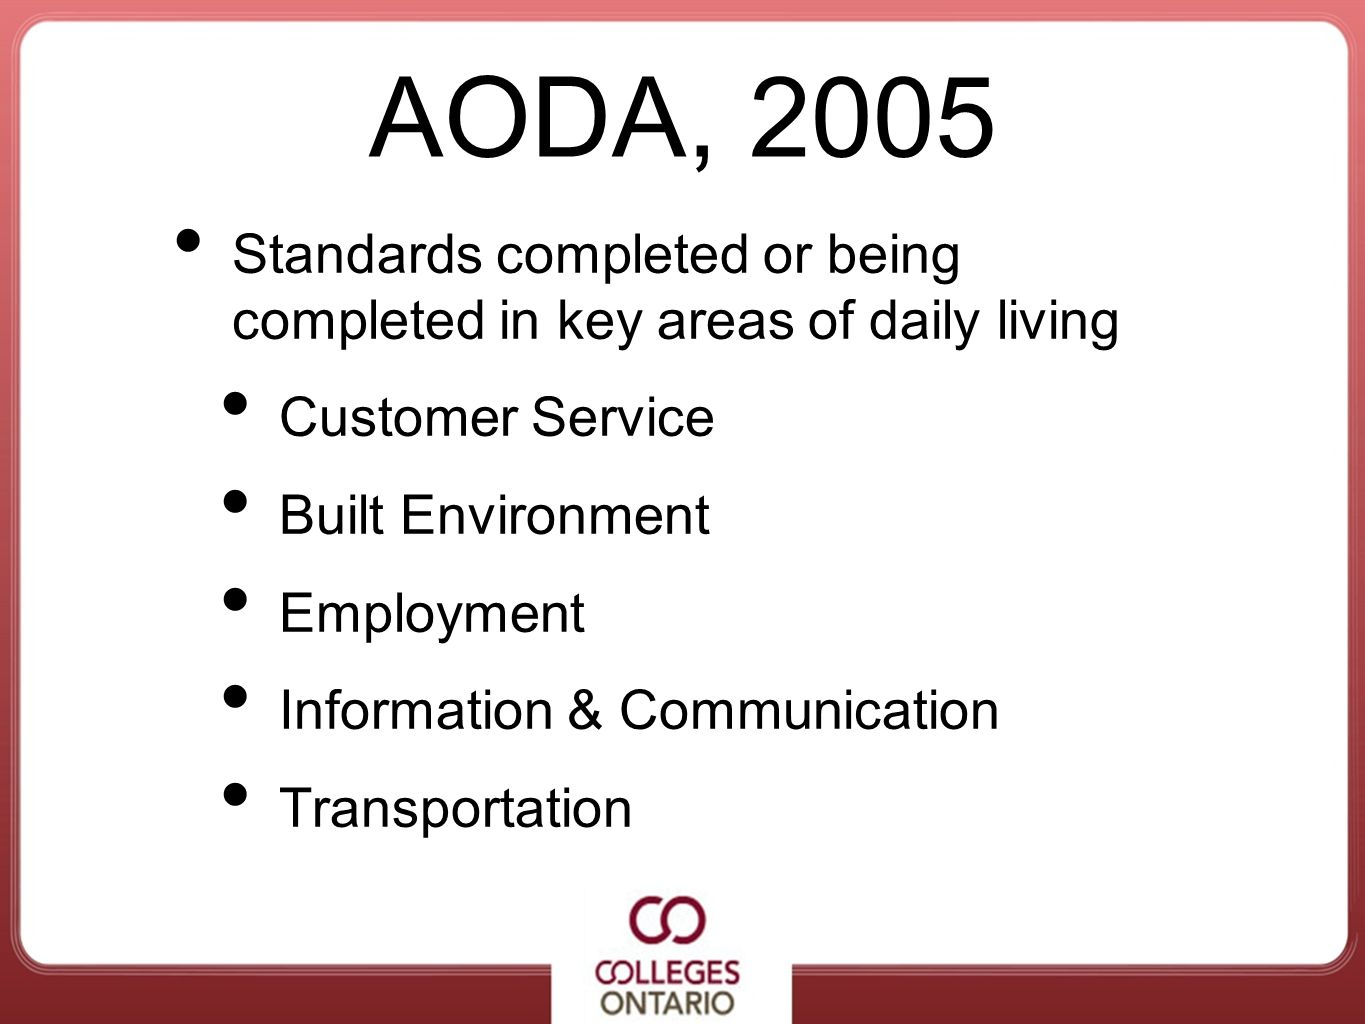 AODA, 2005Standards completed or being completed in key areas of daily living. Customer Service. Built Environment.